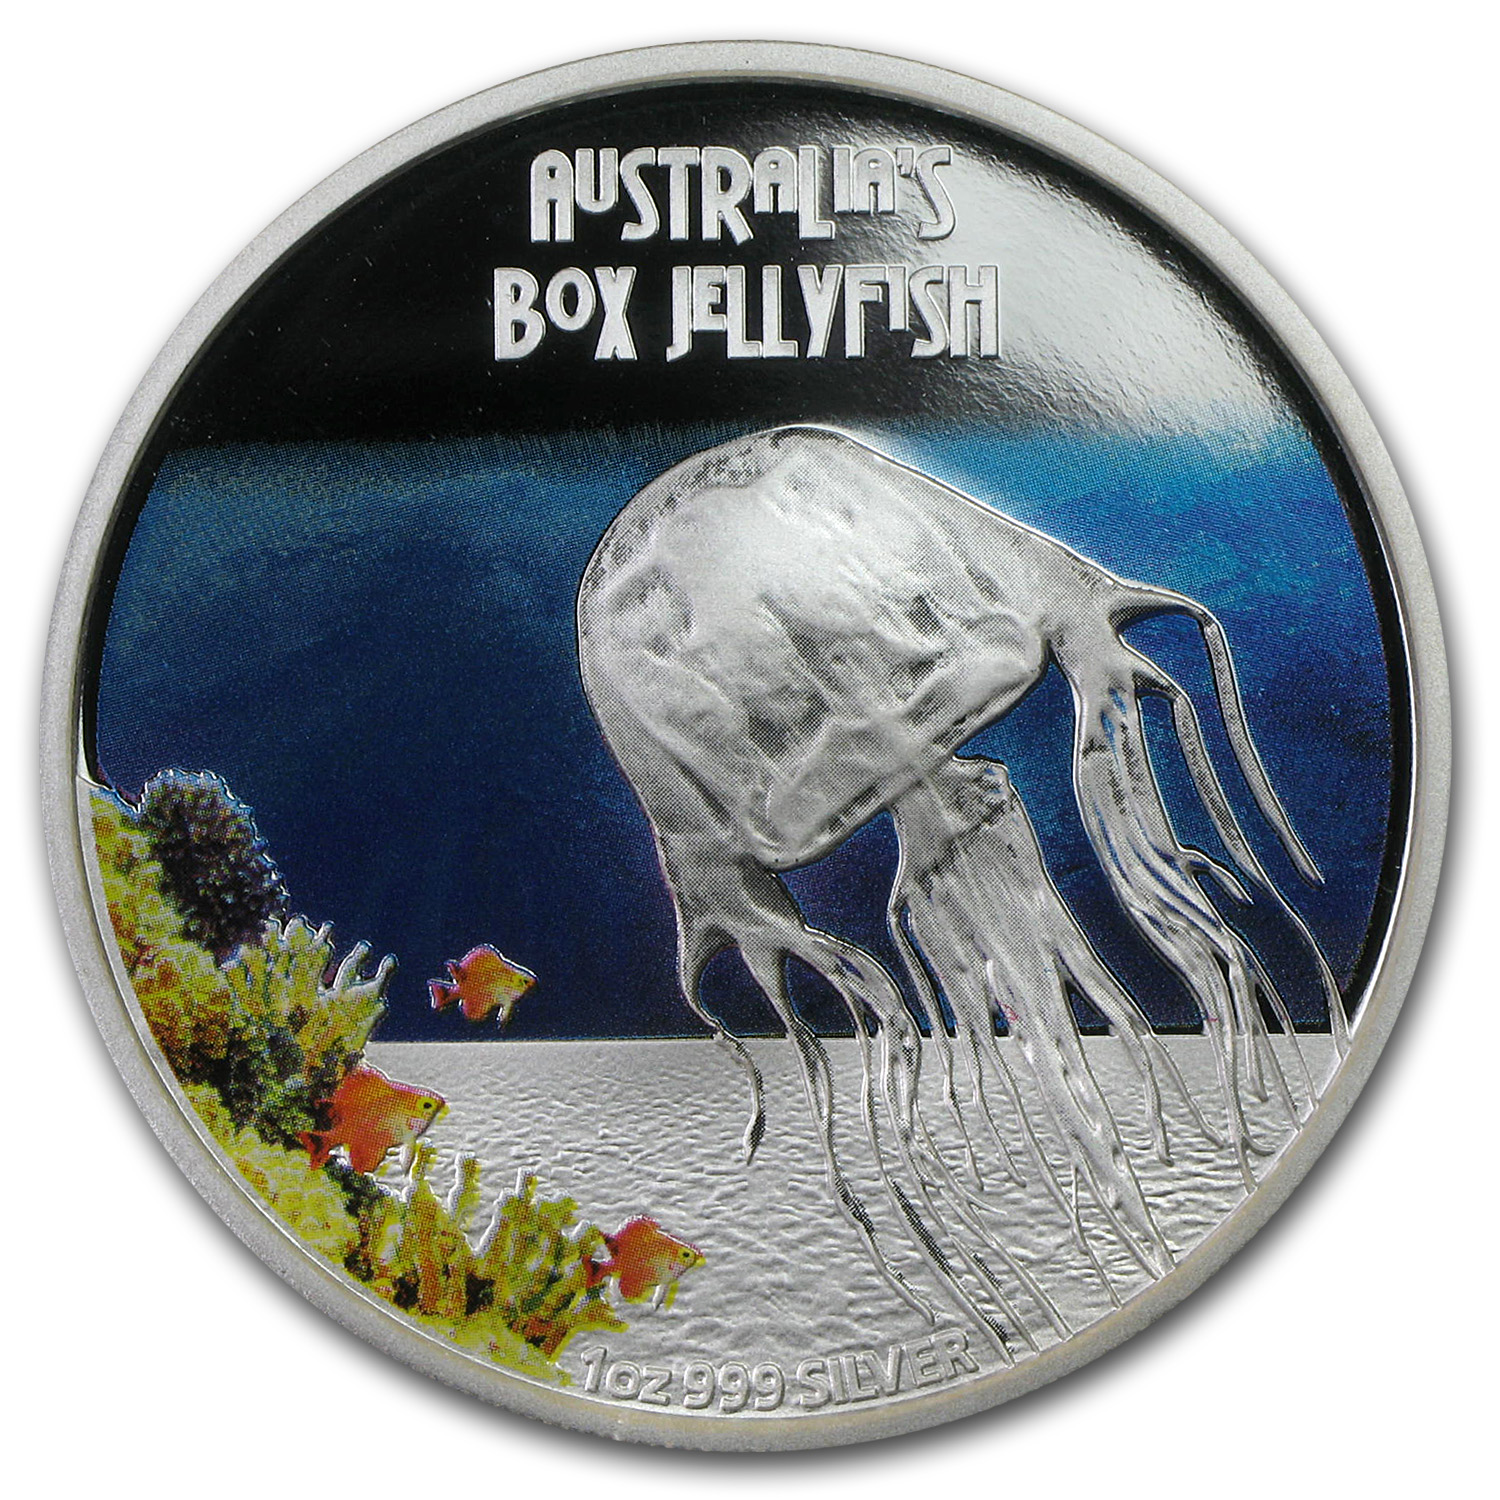 2011 Tuvalu 1 oz Silver Box Jellyfish Proof